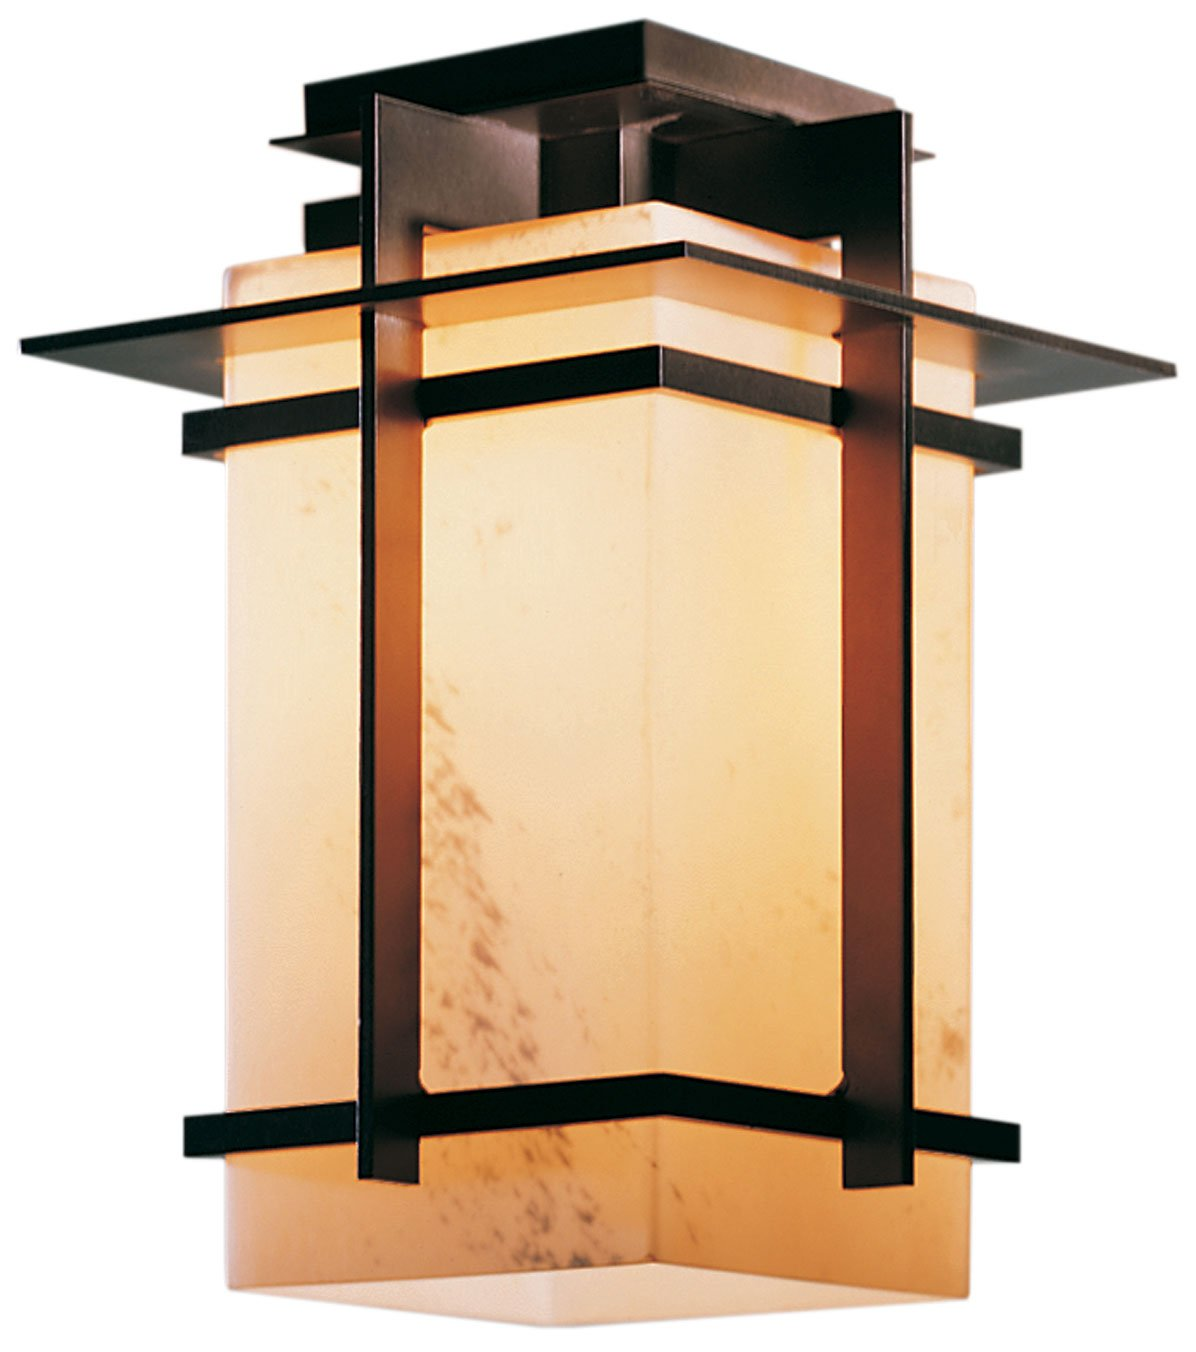 Hubbardton Forge Tourou: Hubbardton Forge 356005 Tourou 75W Transitional Outdoor